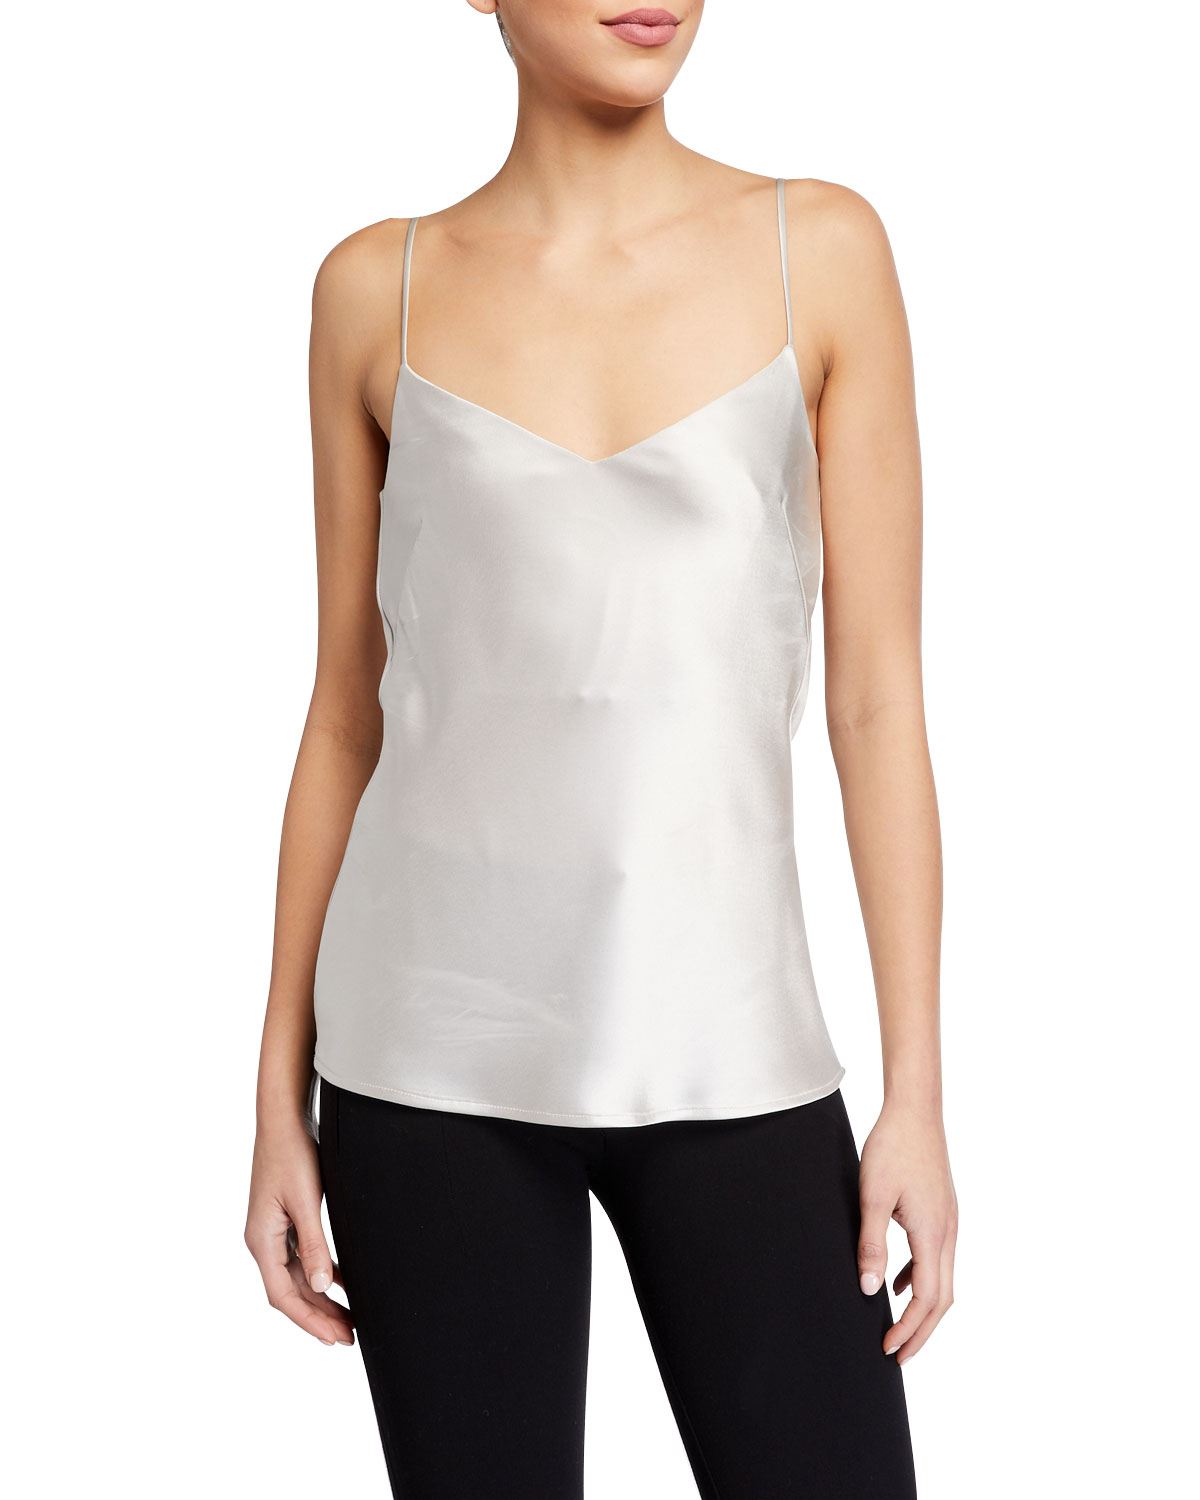 Galvan Tops V-NECK THIN-STRAP SATIN CAMISOLE TOP